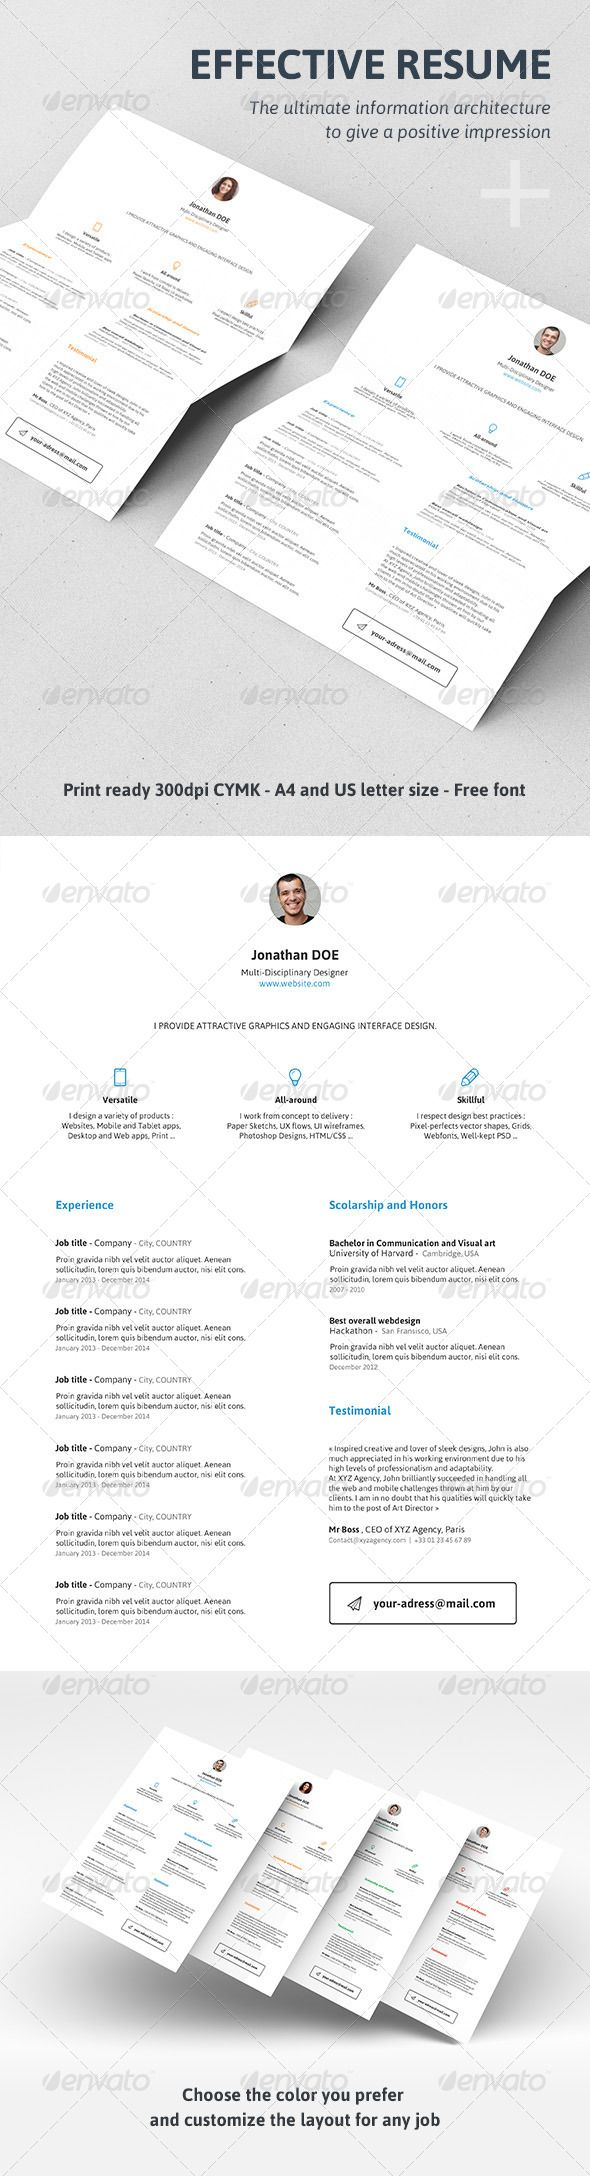 37 best resume  u0026 portfolio design images on pinterest